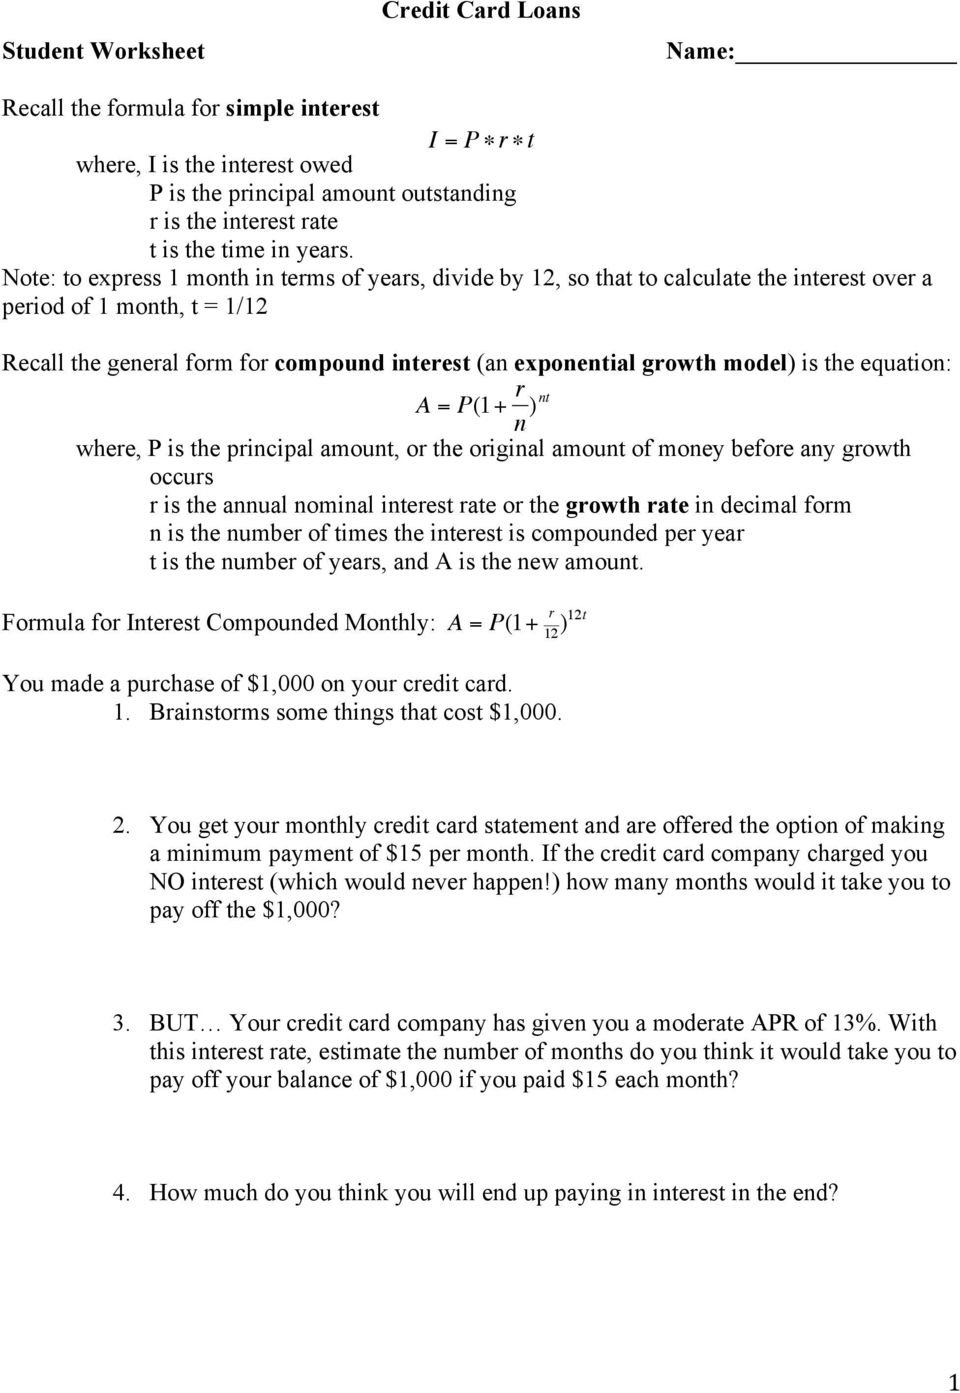 Credit Card Loans Student Worksheet  Pdf Throughout Calculating Your Paycheck Salary Worksheet 1 Answer Key